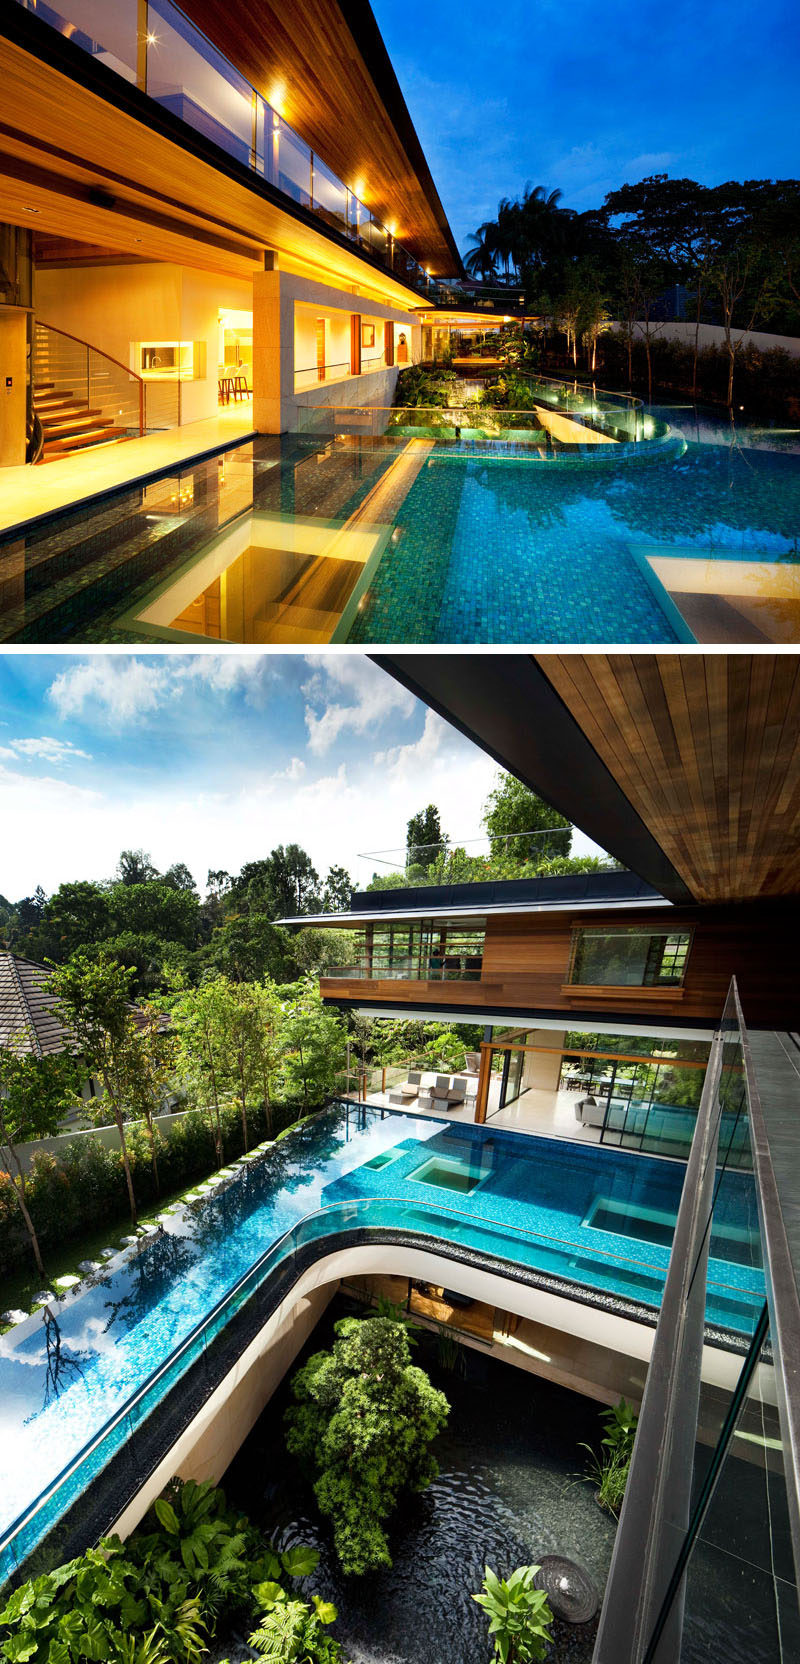 This modern house has a swimming pool that curves, and has windows to the level below, allowing light to filter through the water. #SwimmingPool #ModernHouse